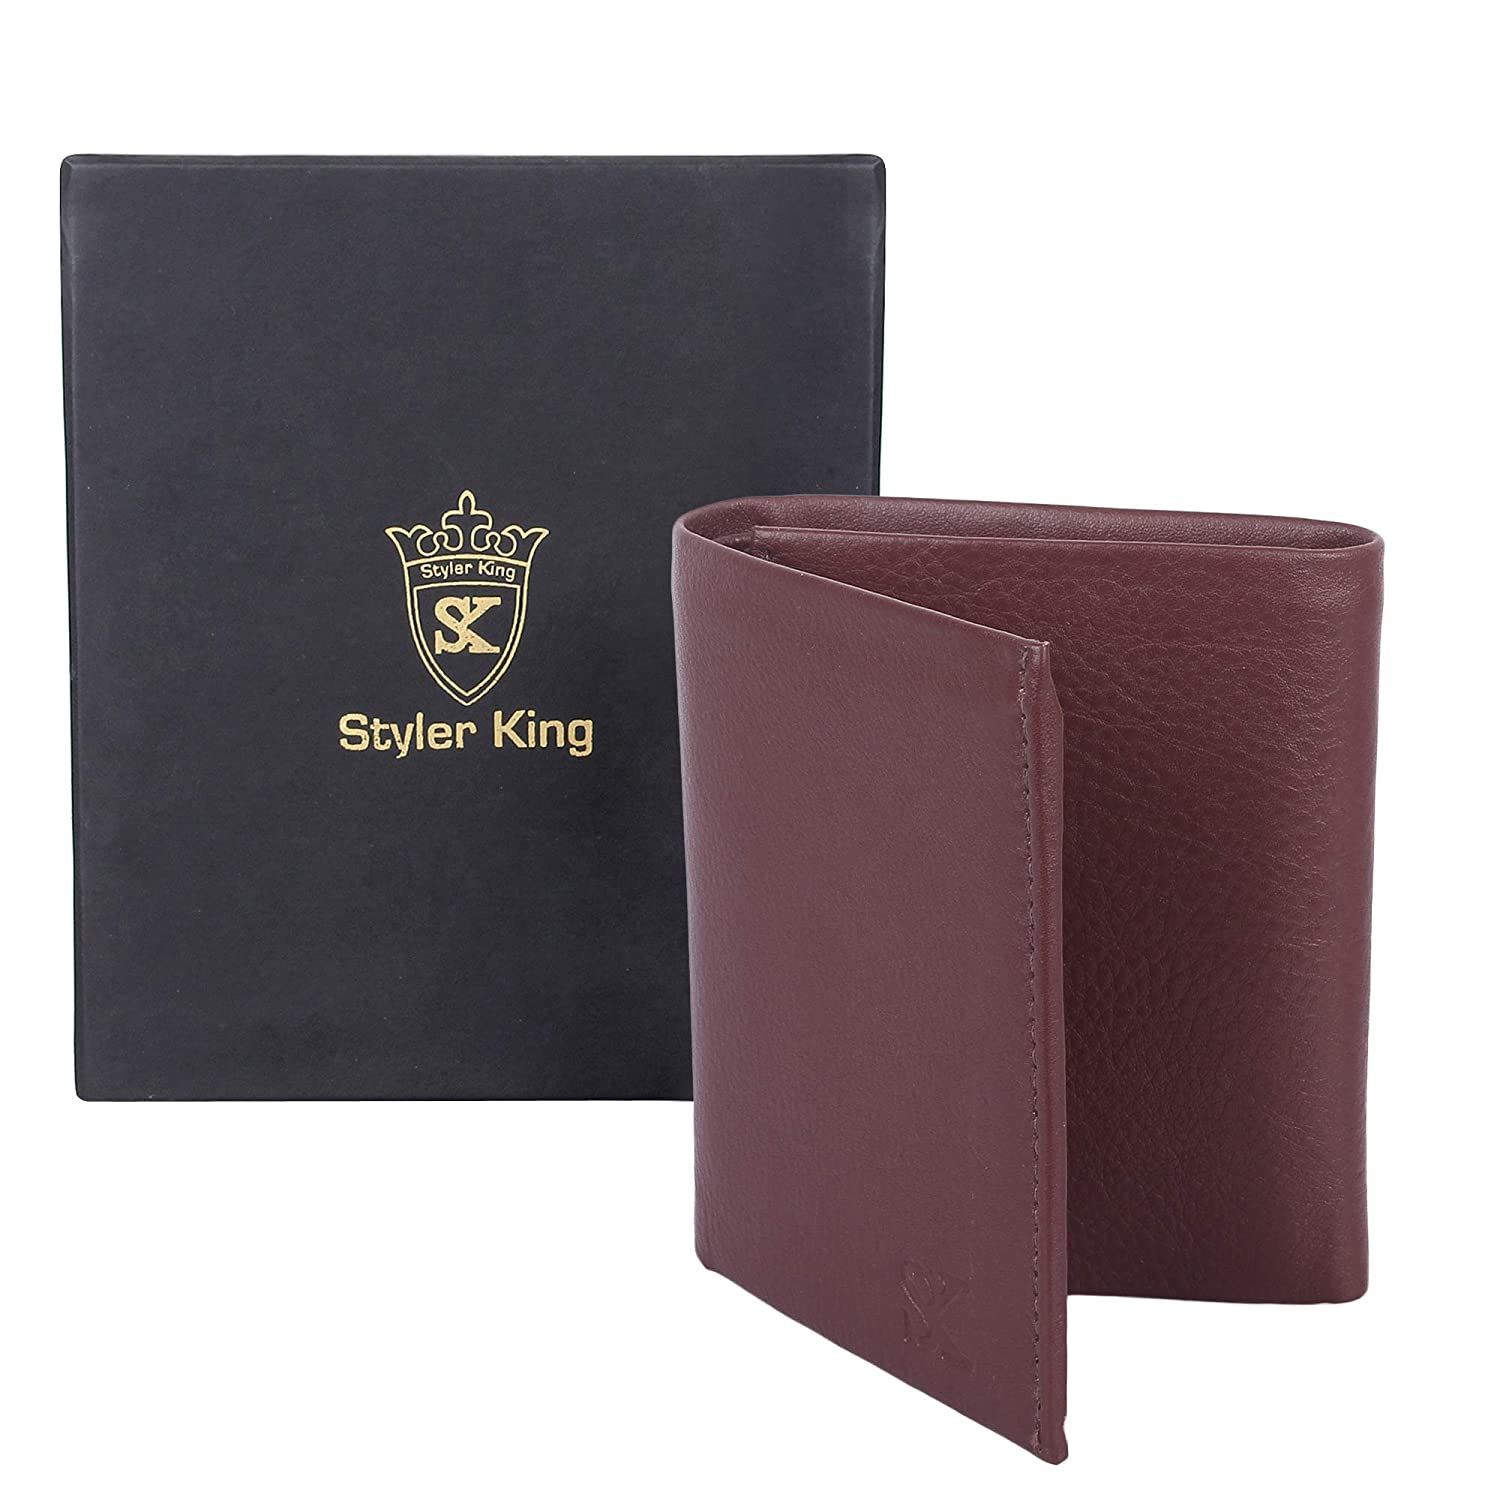 STYLER KING Men Wallets with Latest Designer Genuine Leather Wallet With Large Zip Coin Pocket-Gift Box